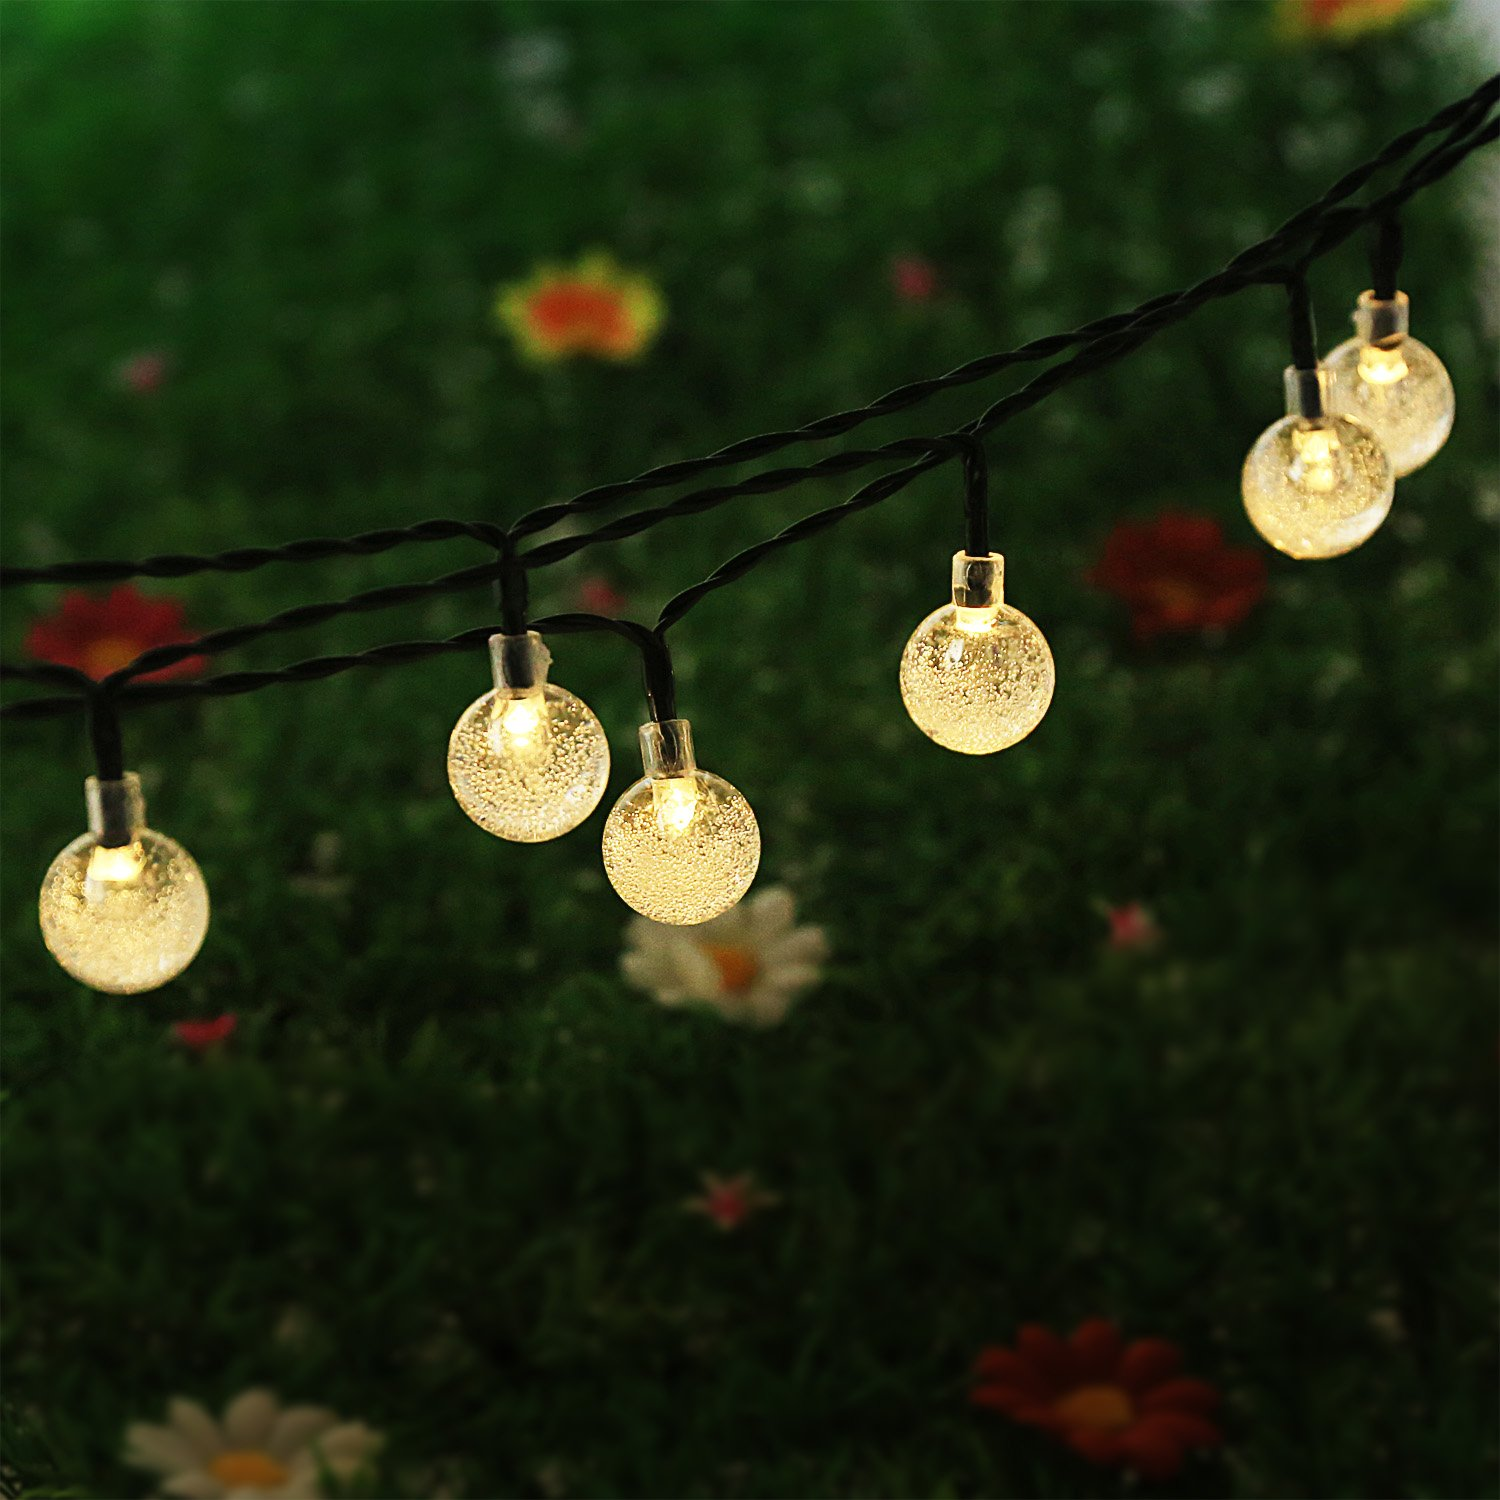 Solar String Lights For Garden : NEWSTYLE 16.4Ft 30 LED Crystal Ball Solar Powered Outdoor String Lights for O